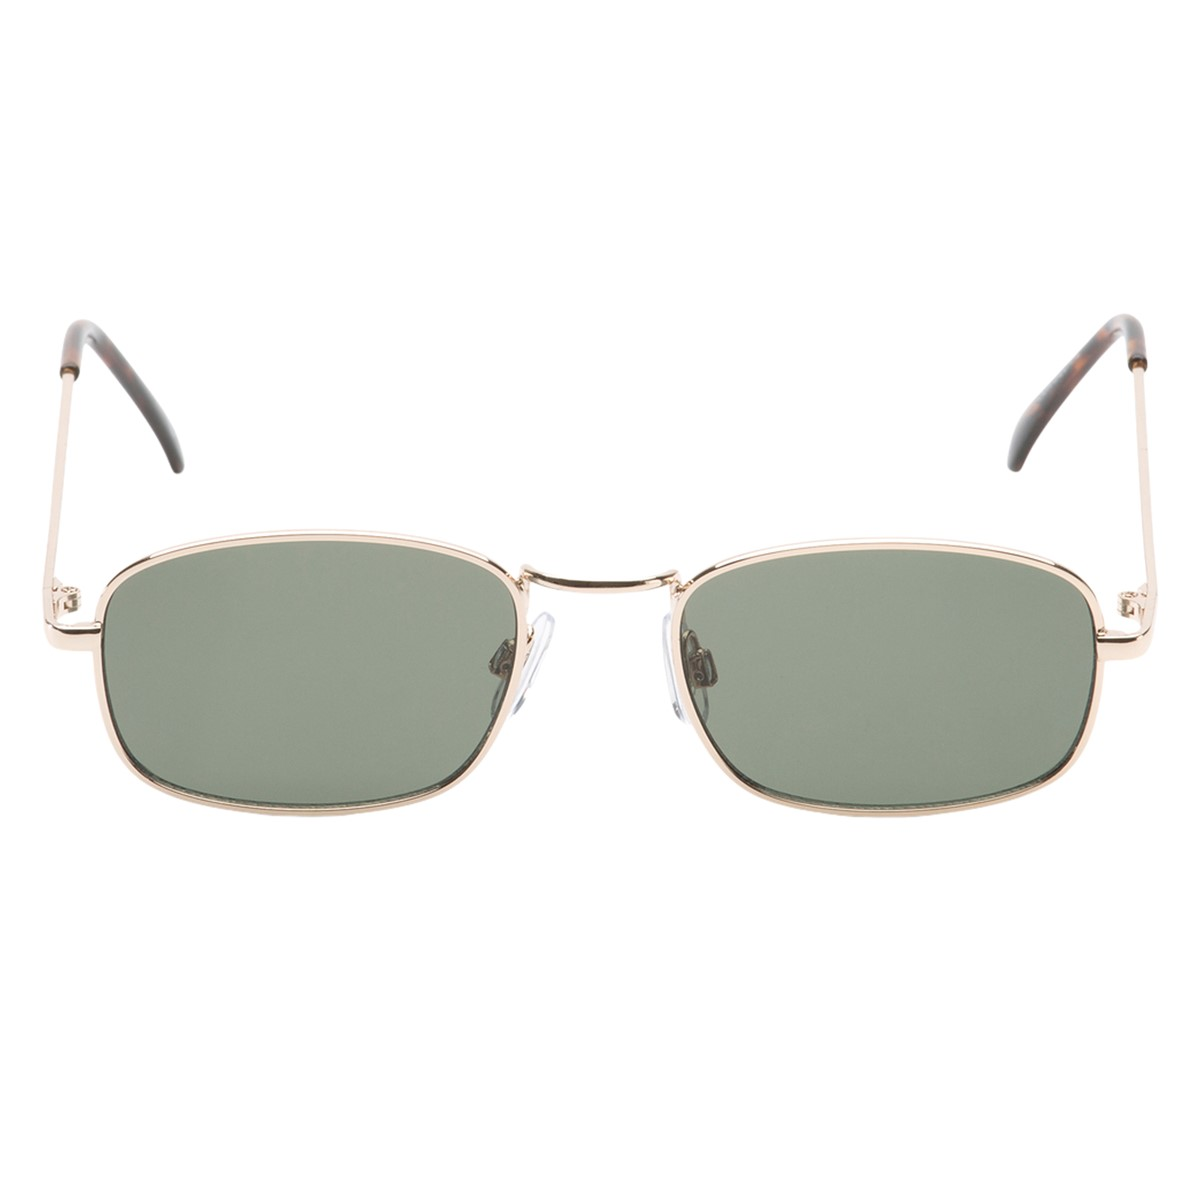 Four-Square Sunglasses in Gold